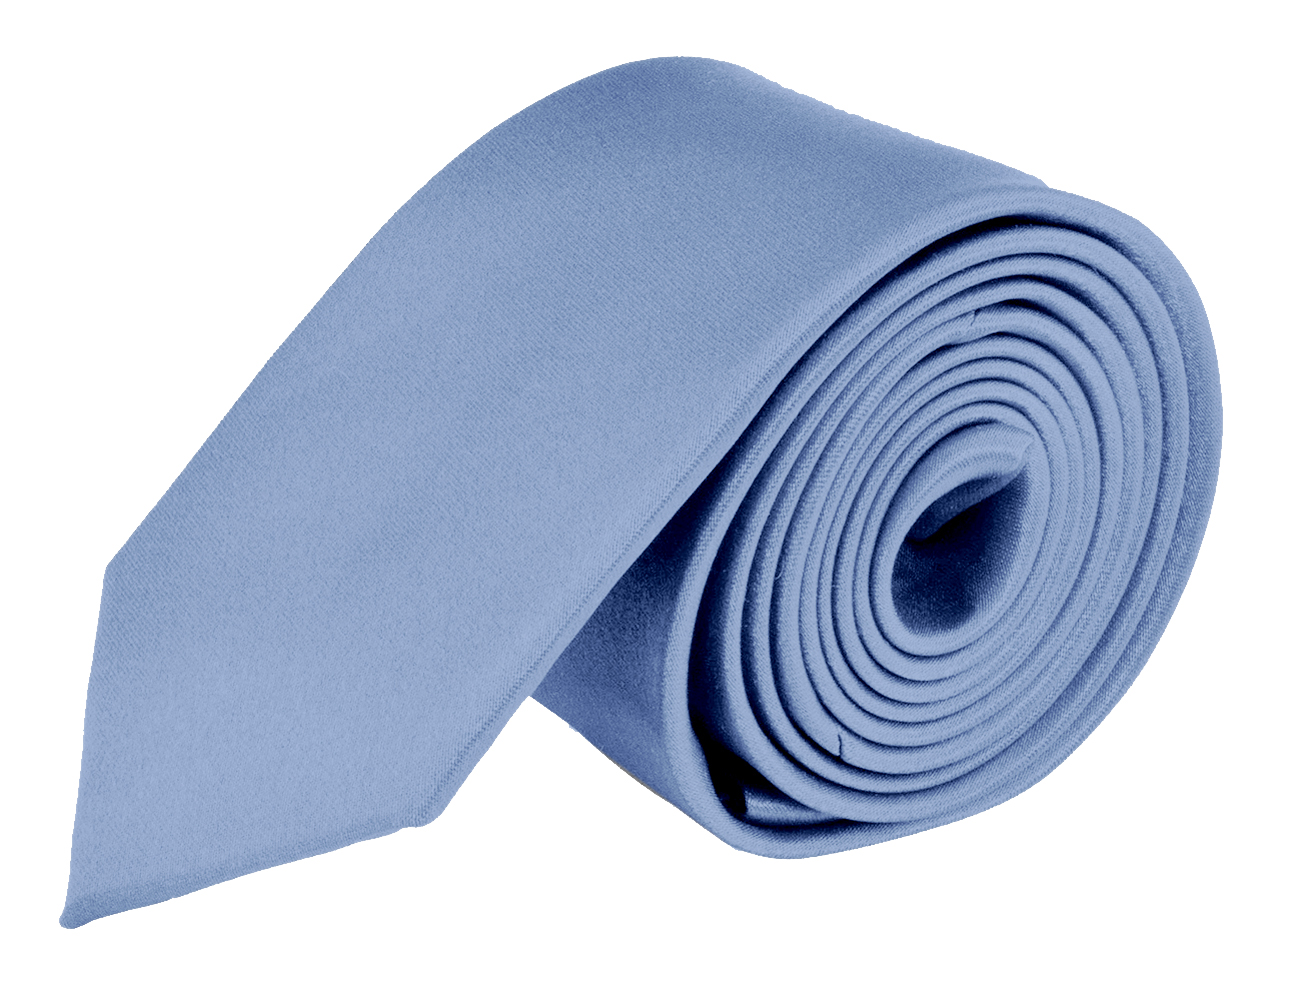 Moda Di Raza- Mens Skinny Slim Neck Tie - Silk Finish Polyester Men Necktie - Solid Color Long Ties for Men - Fashion Tie - Periwinkle